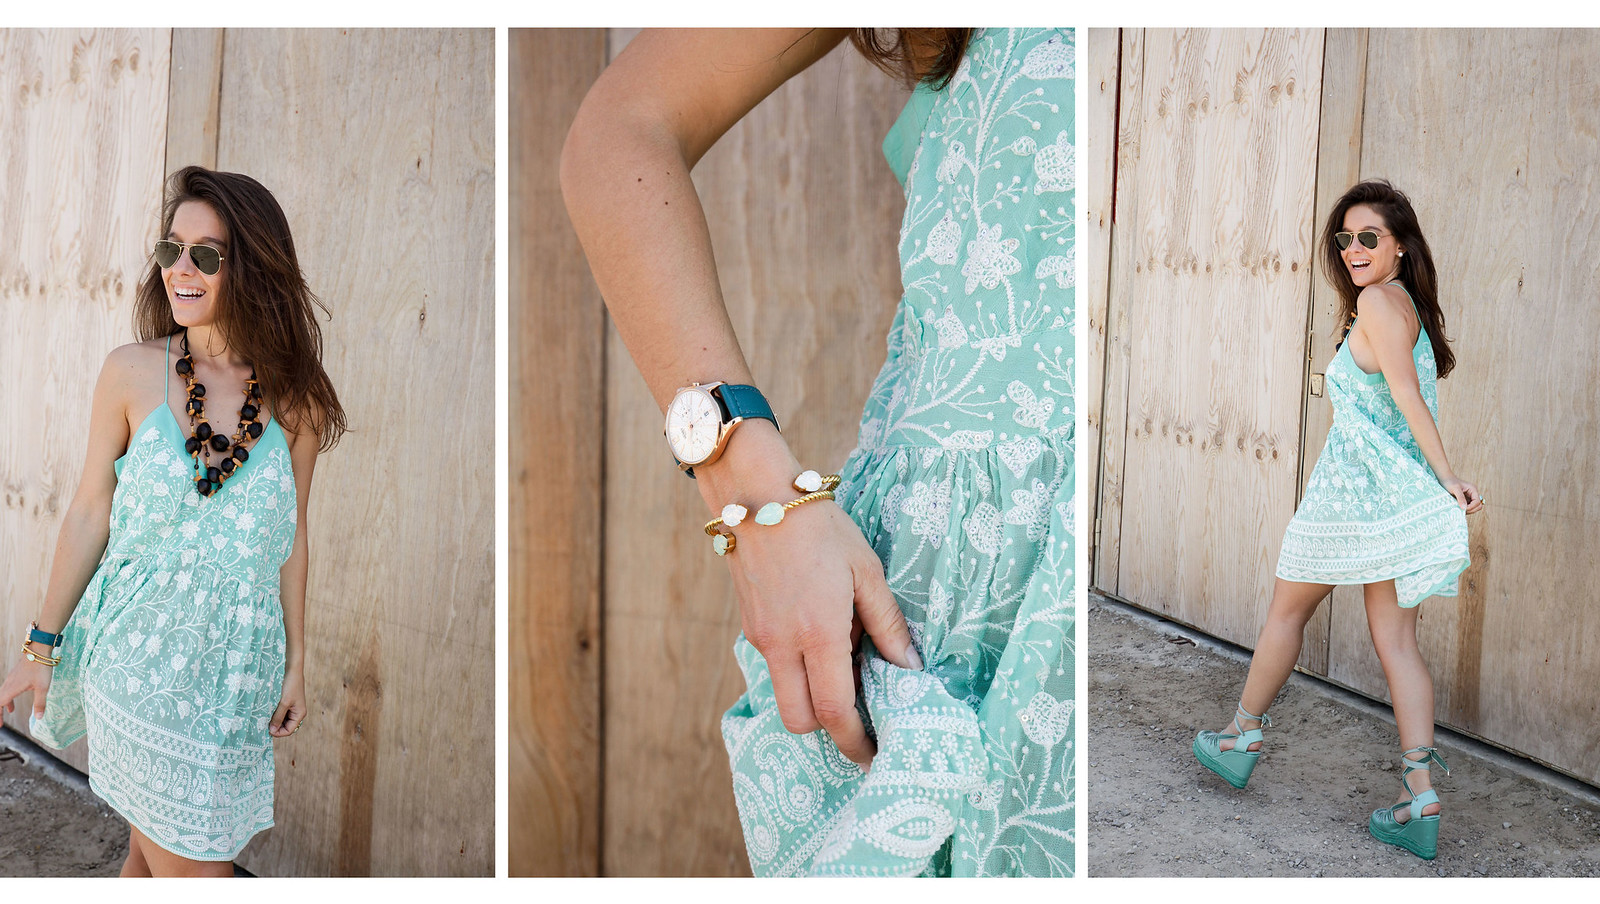 08_turquoise__dress_summer_outfit_miss_june_castañer_cuñas_aguamarina_theguestgirl_influencer_barcelona_laura_santolaria